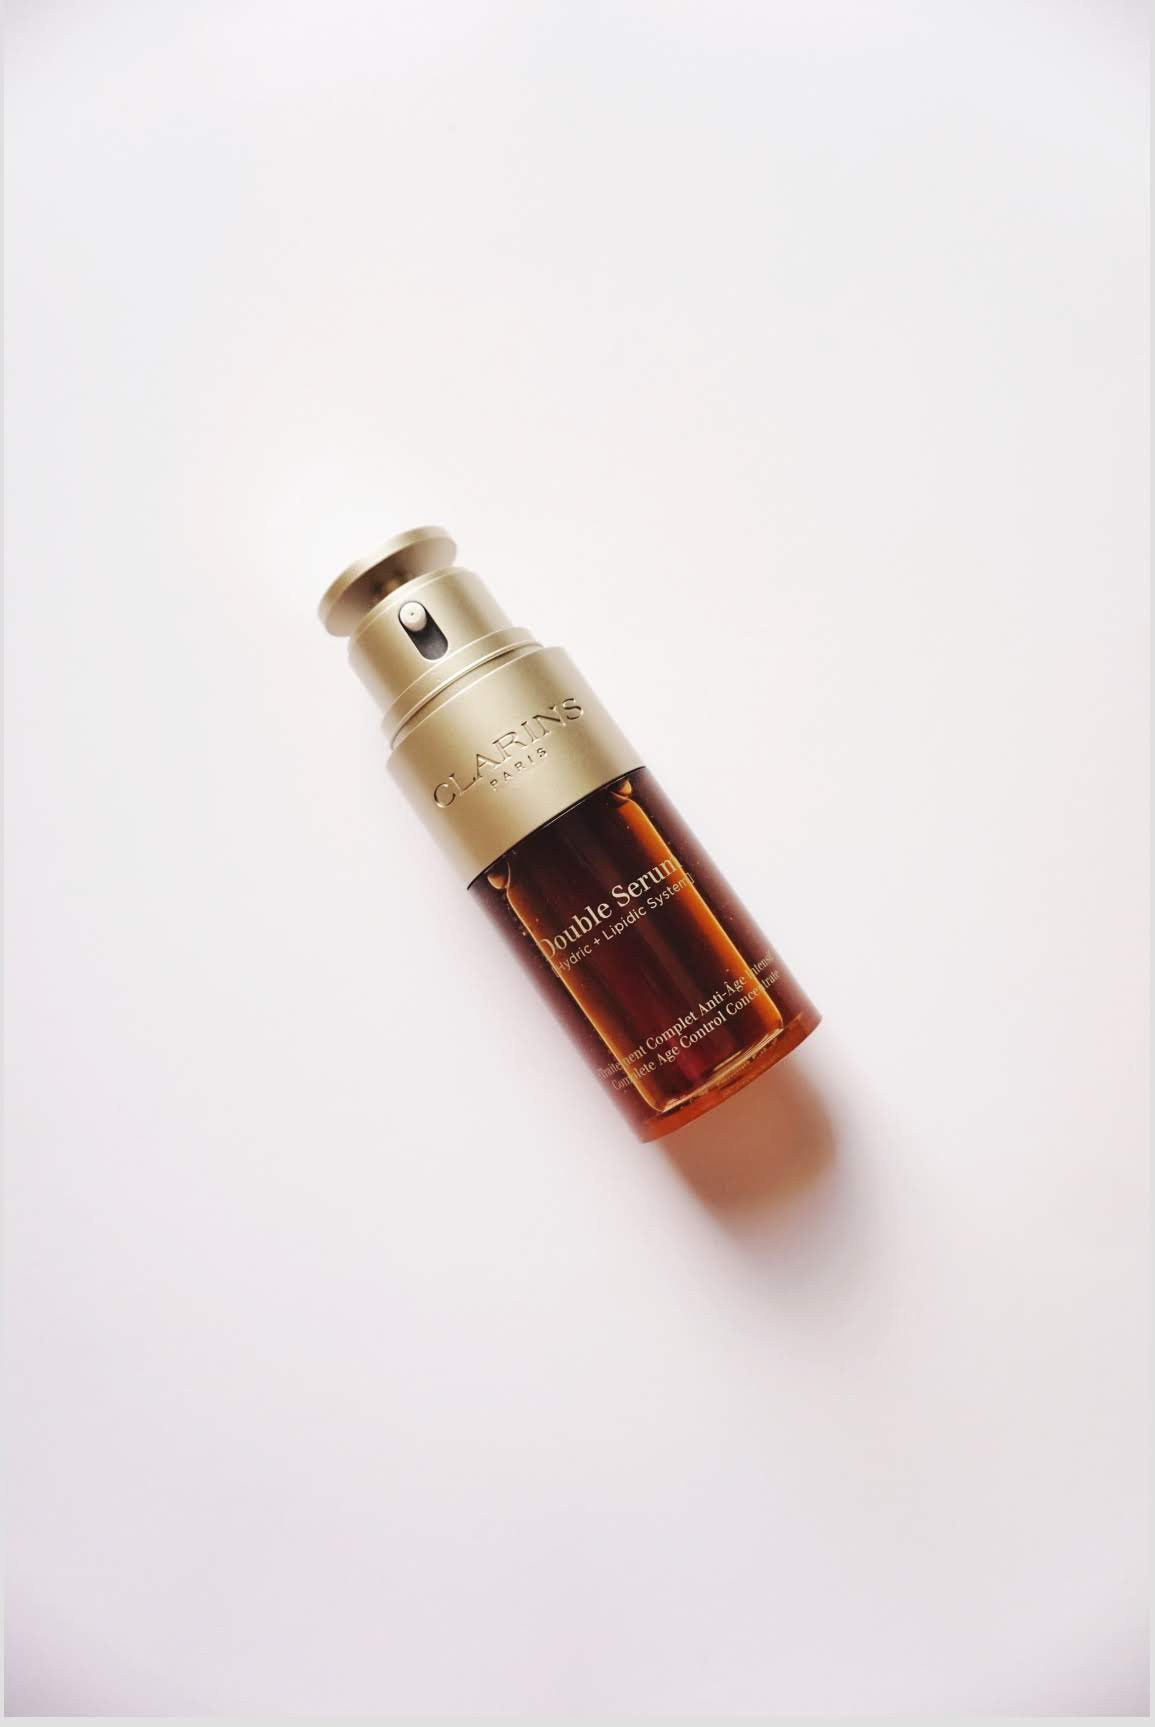 Clarins Double Serum: In Review